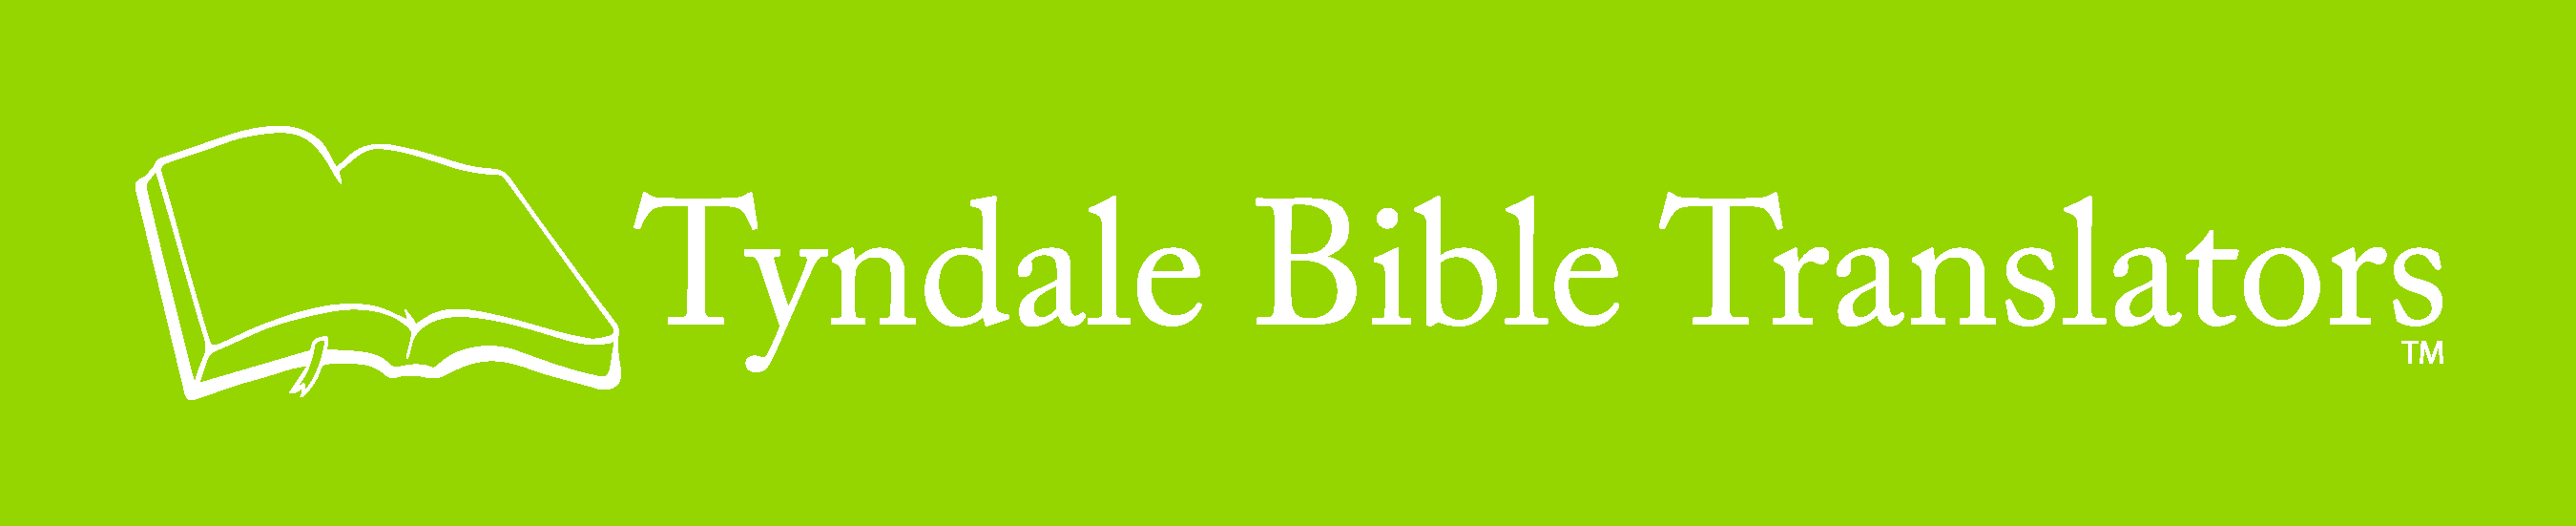 Tyndale Bible Translators